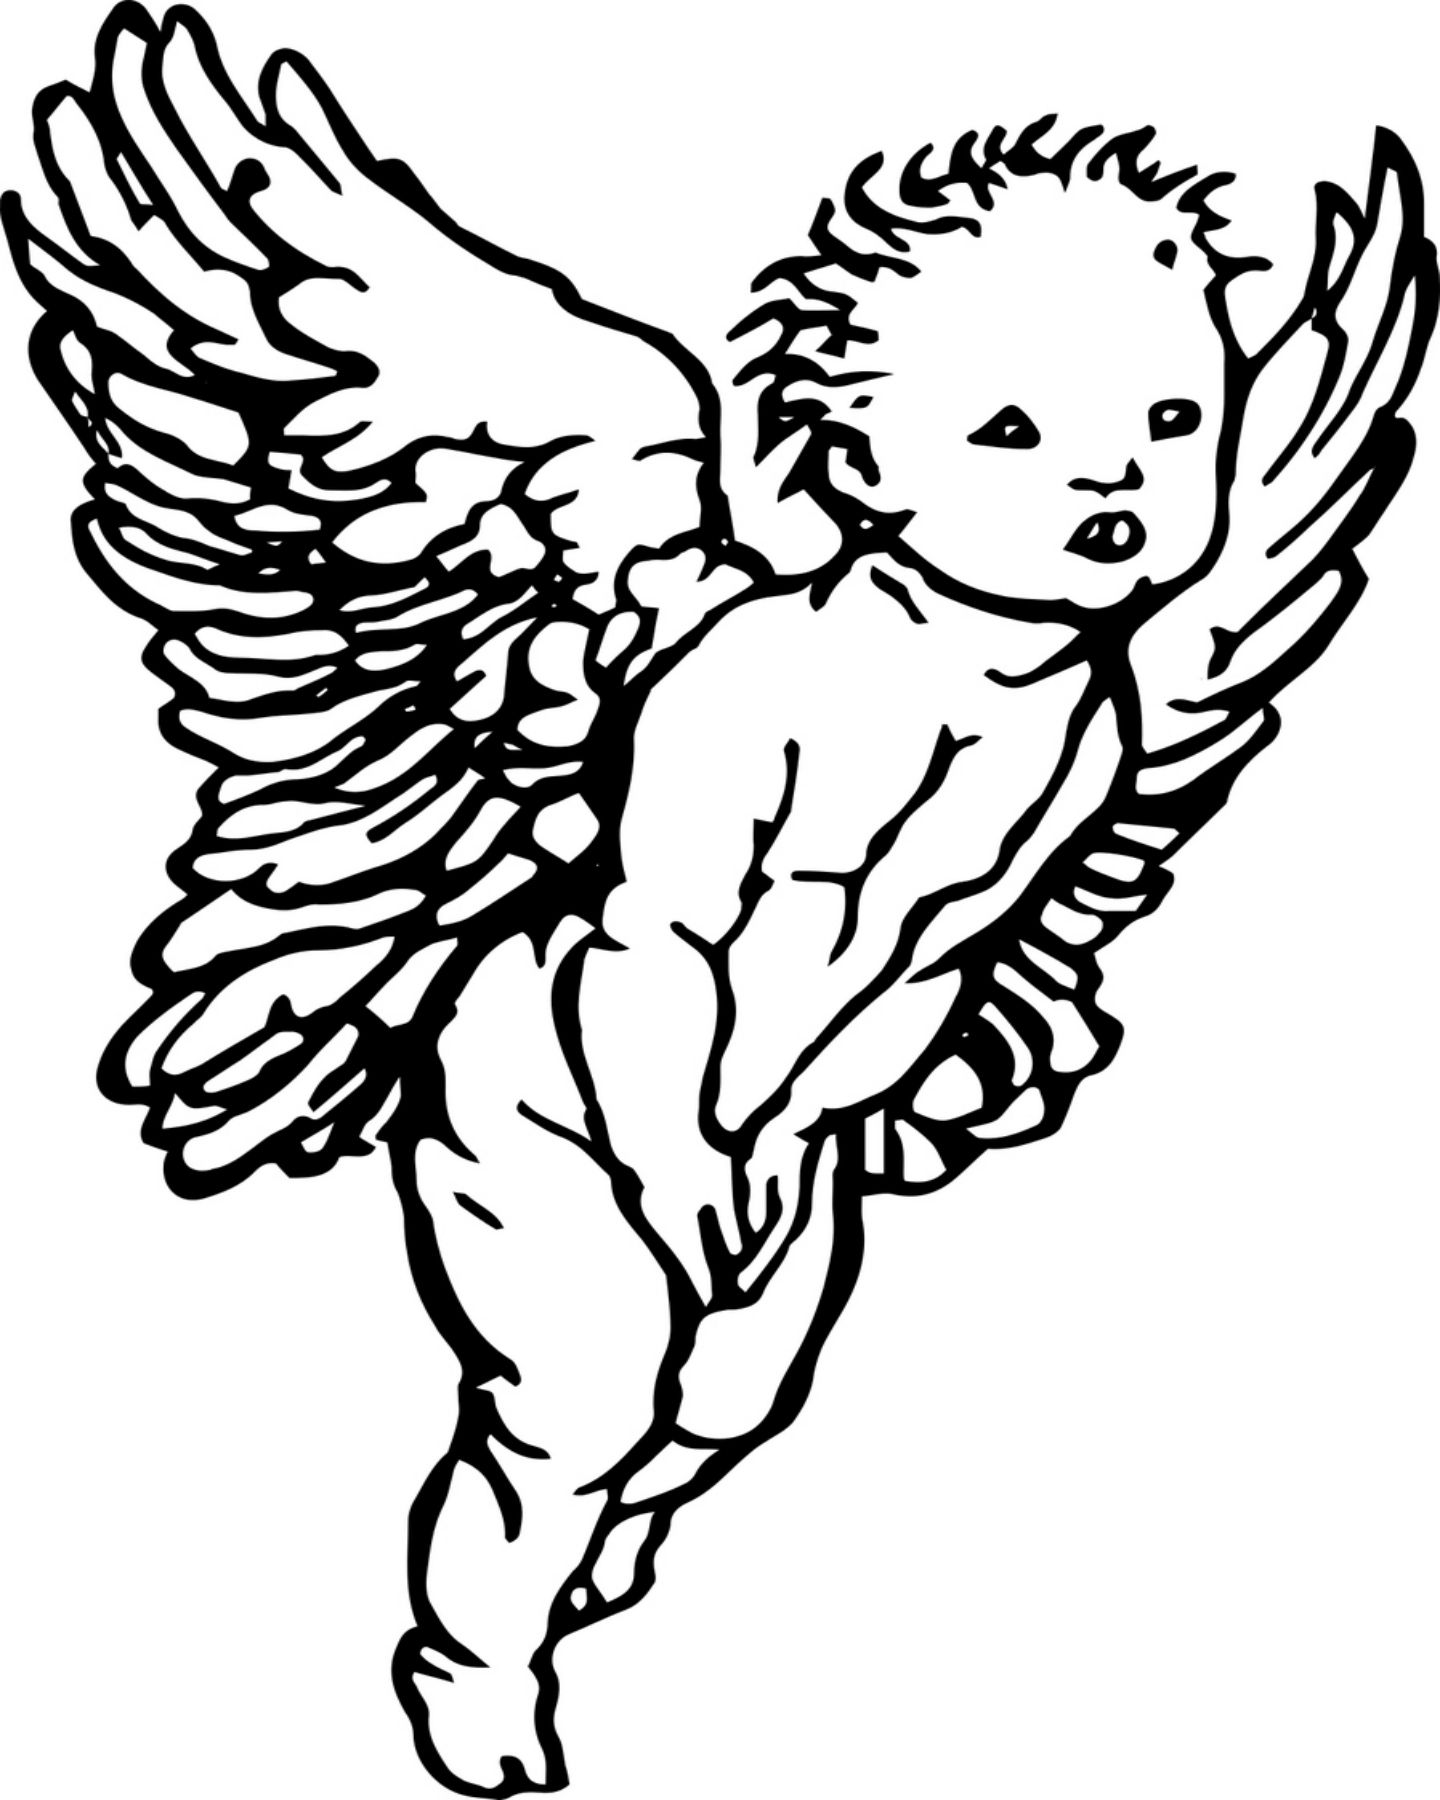 Cherub Coloring Pages At Getcolorings